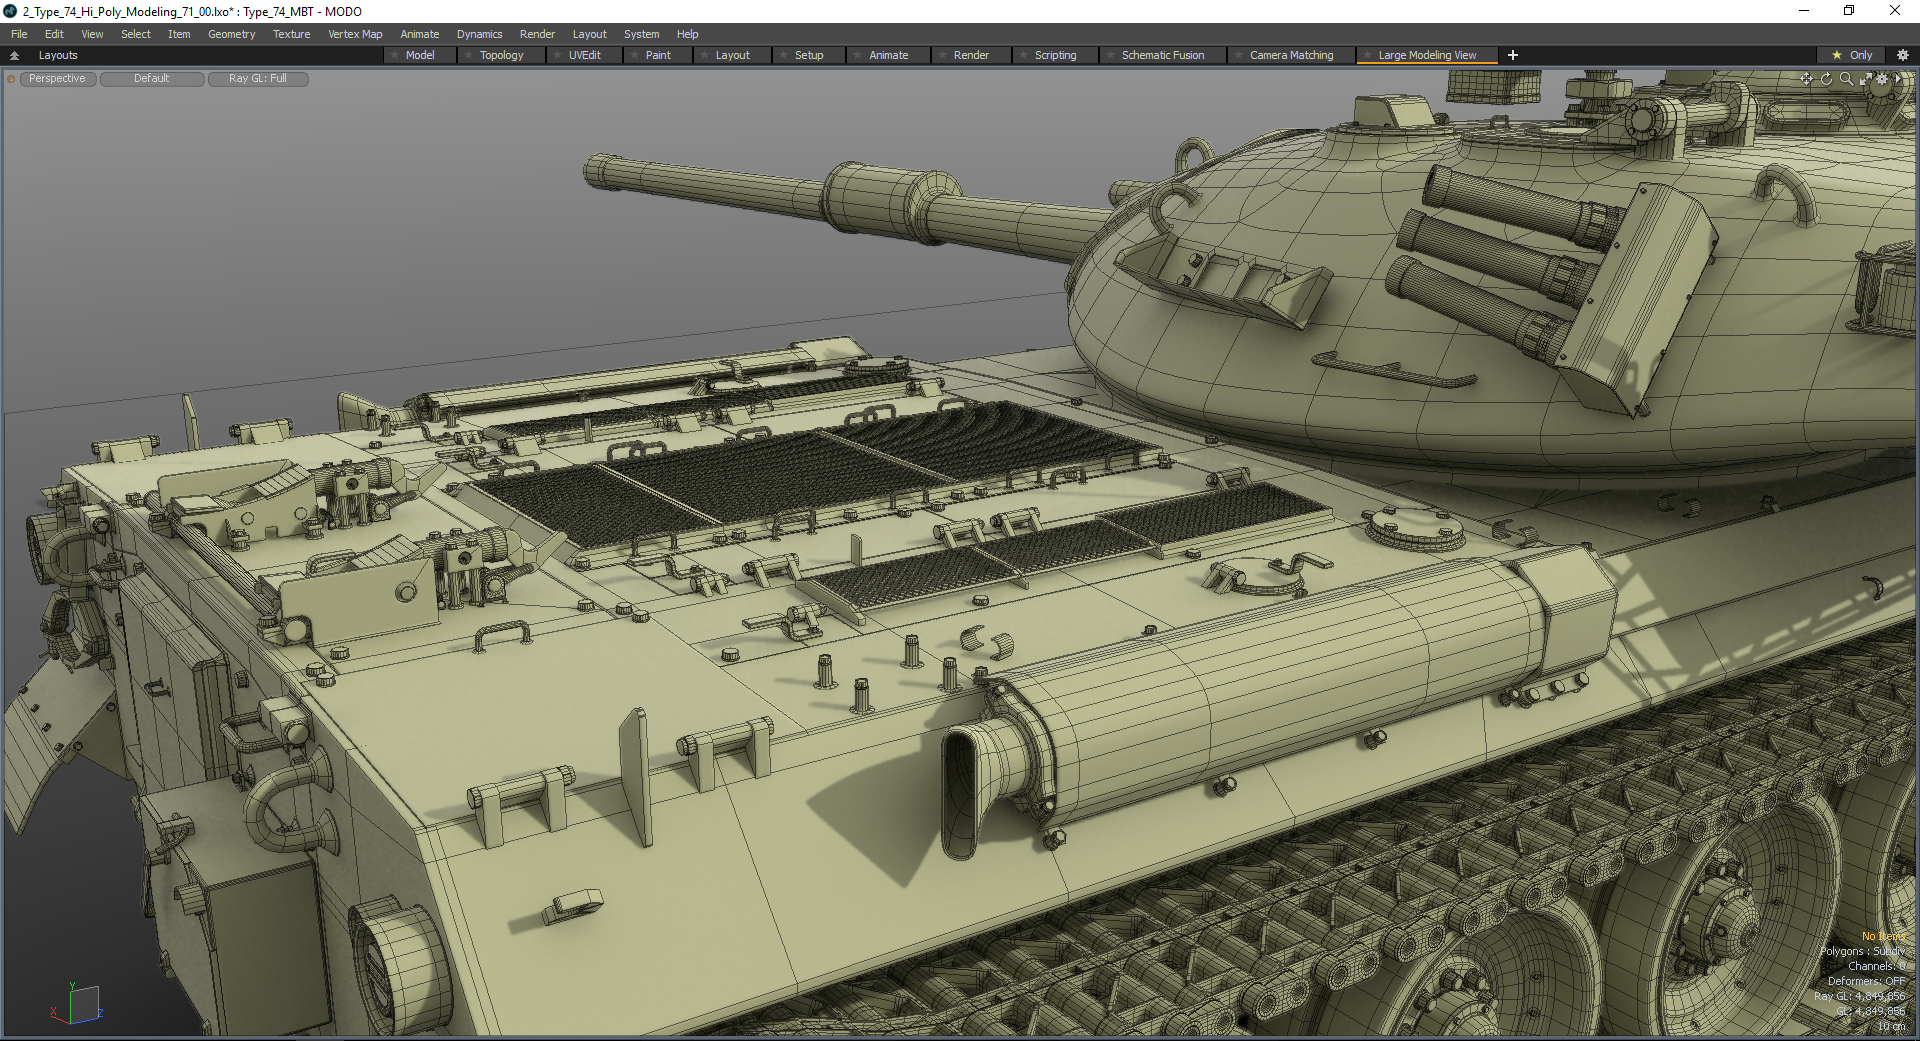 type_74_71hours_modeling_04